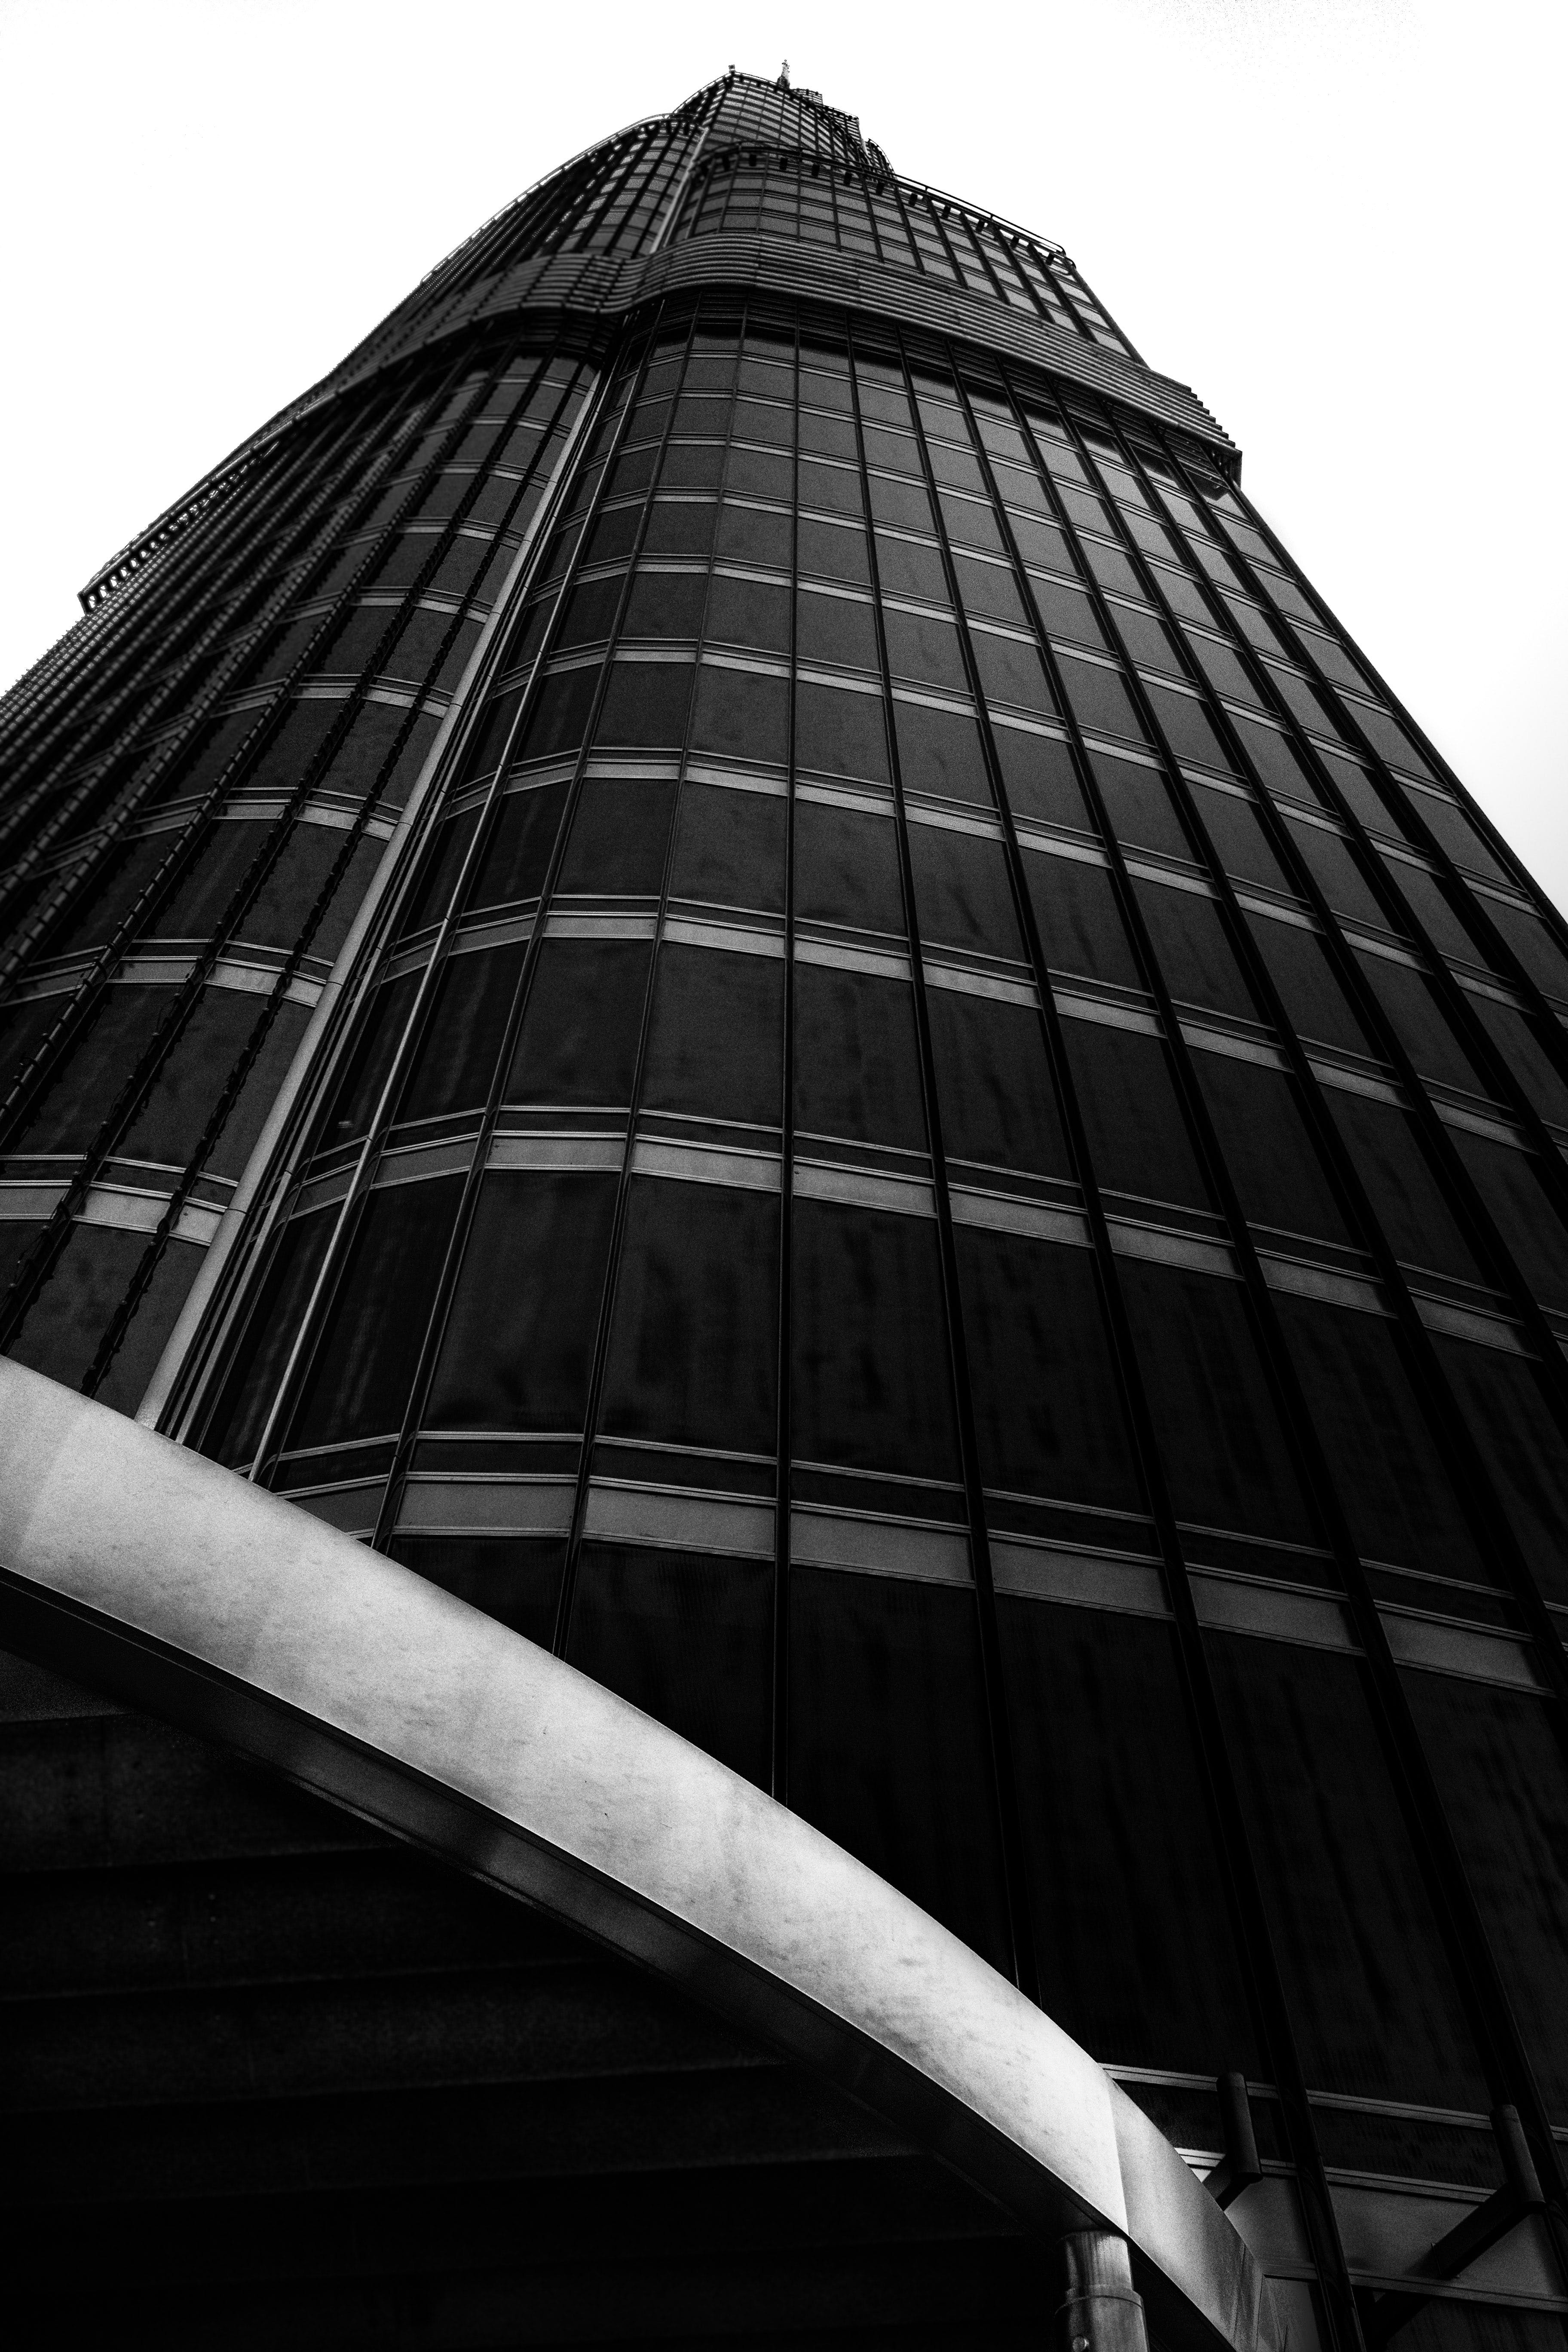 Grayscale Low Angle Photo of High-rise Building